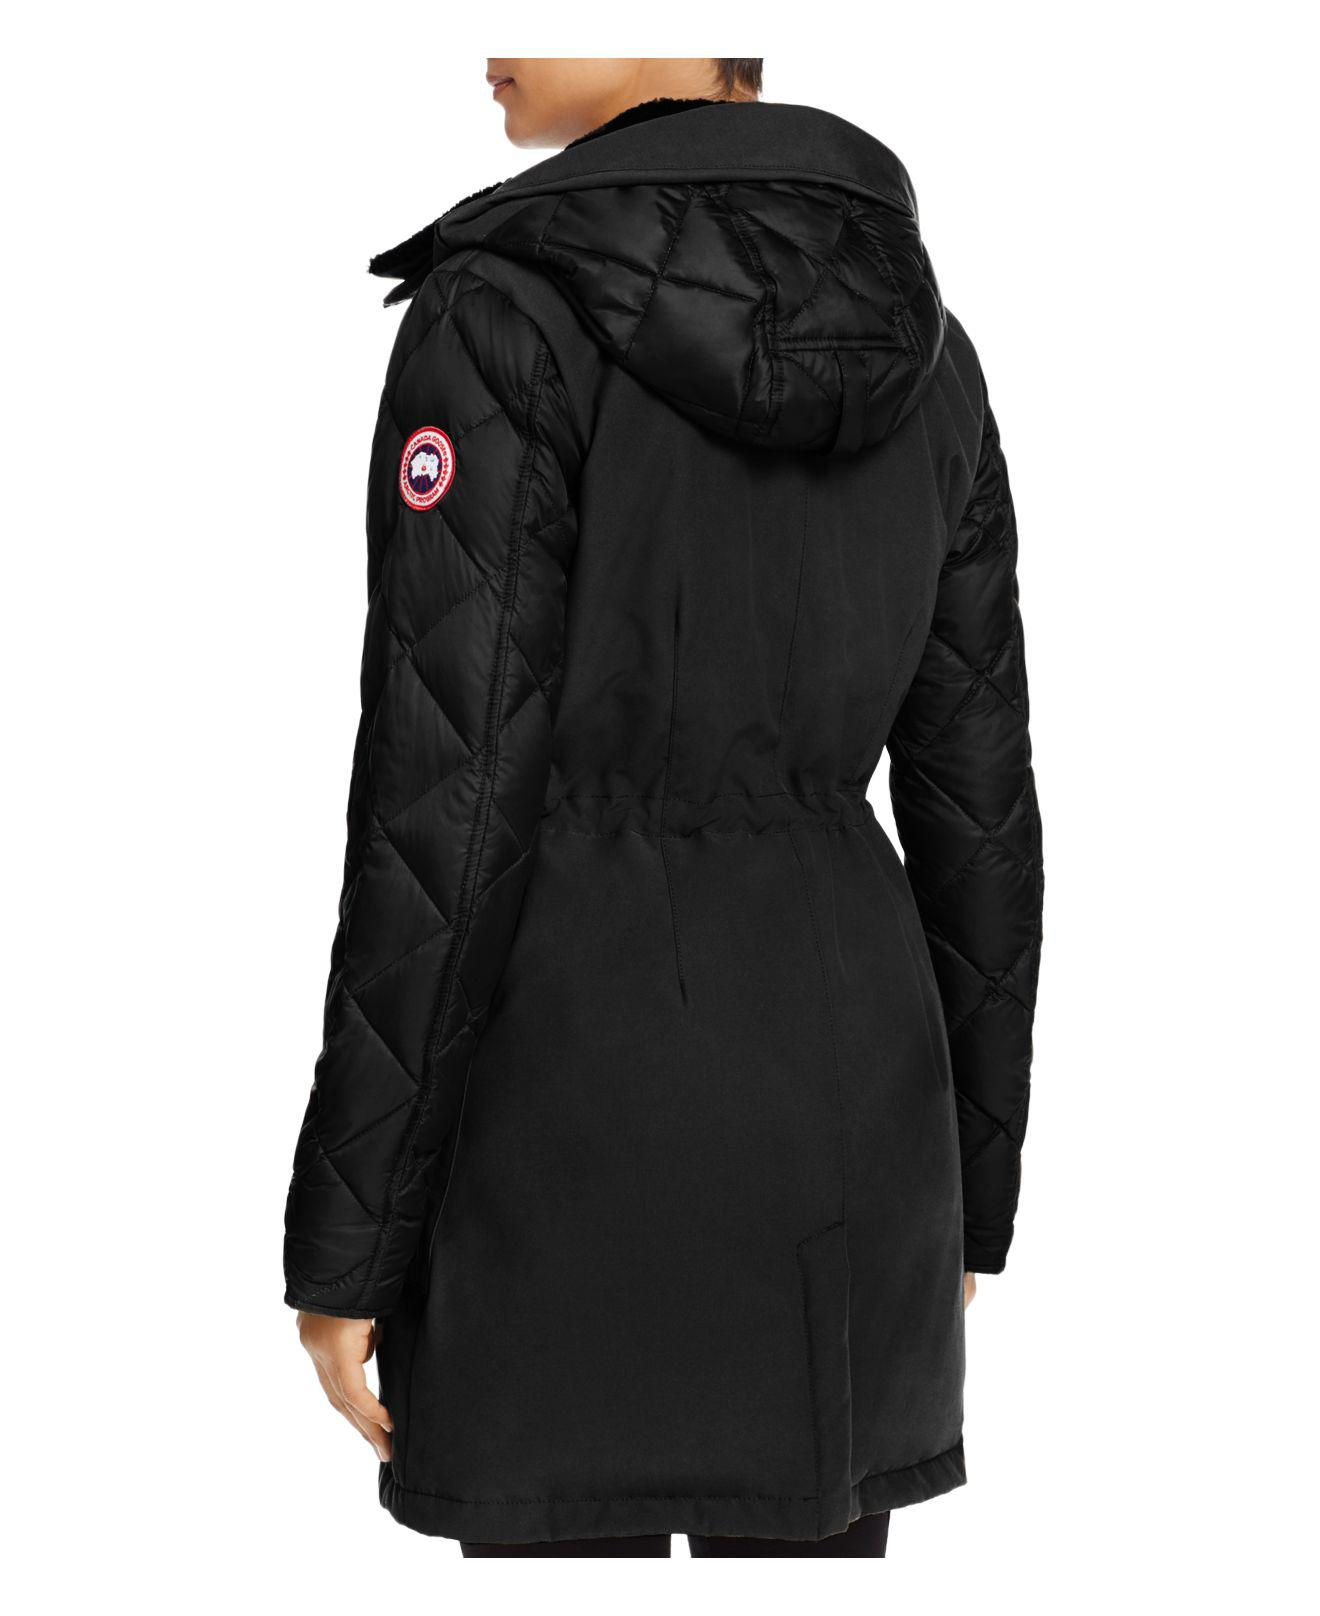 ... Canada goose Elwin Shearling Trim Down Parka in Black Lyst ...